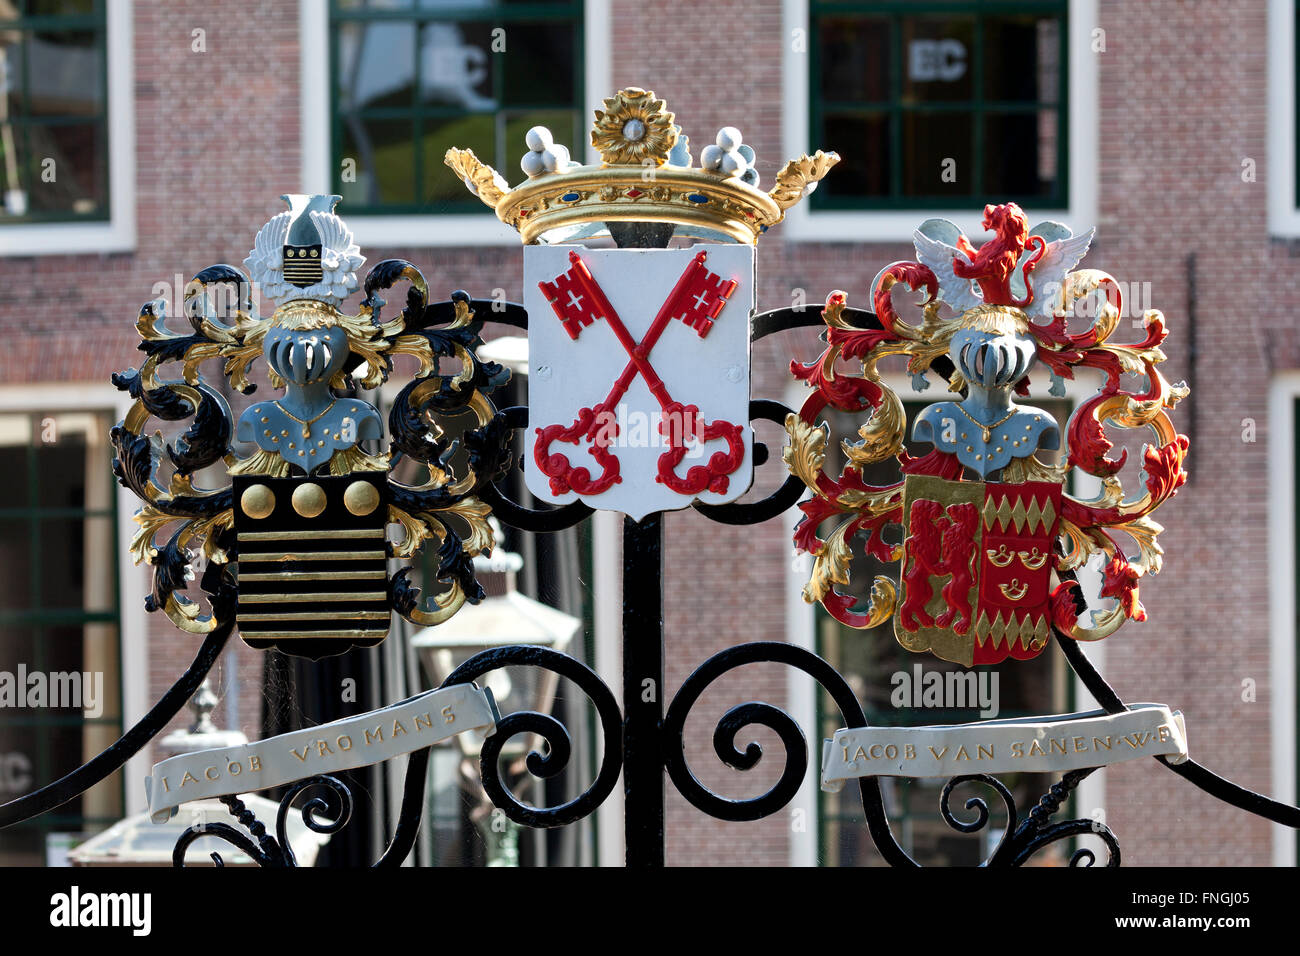 Coat of arms on the gate of the entrance to the Burcht in Leiden - Stock Image